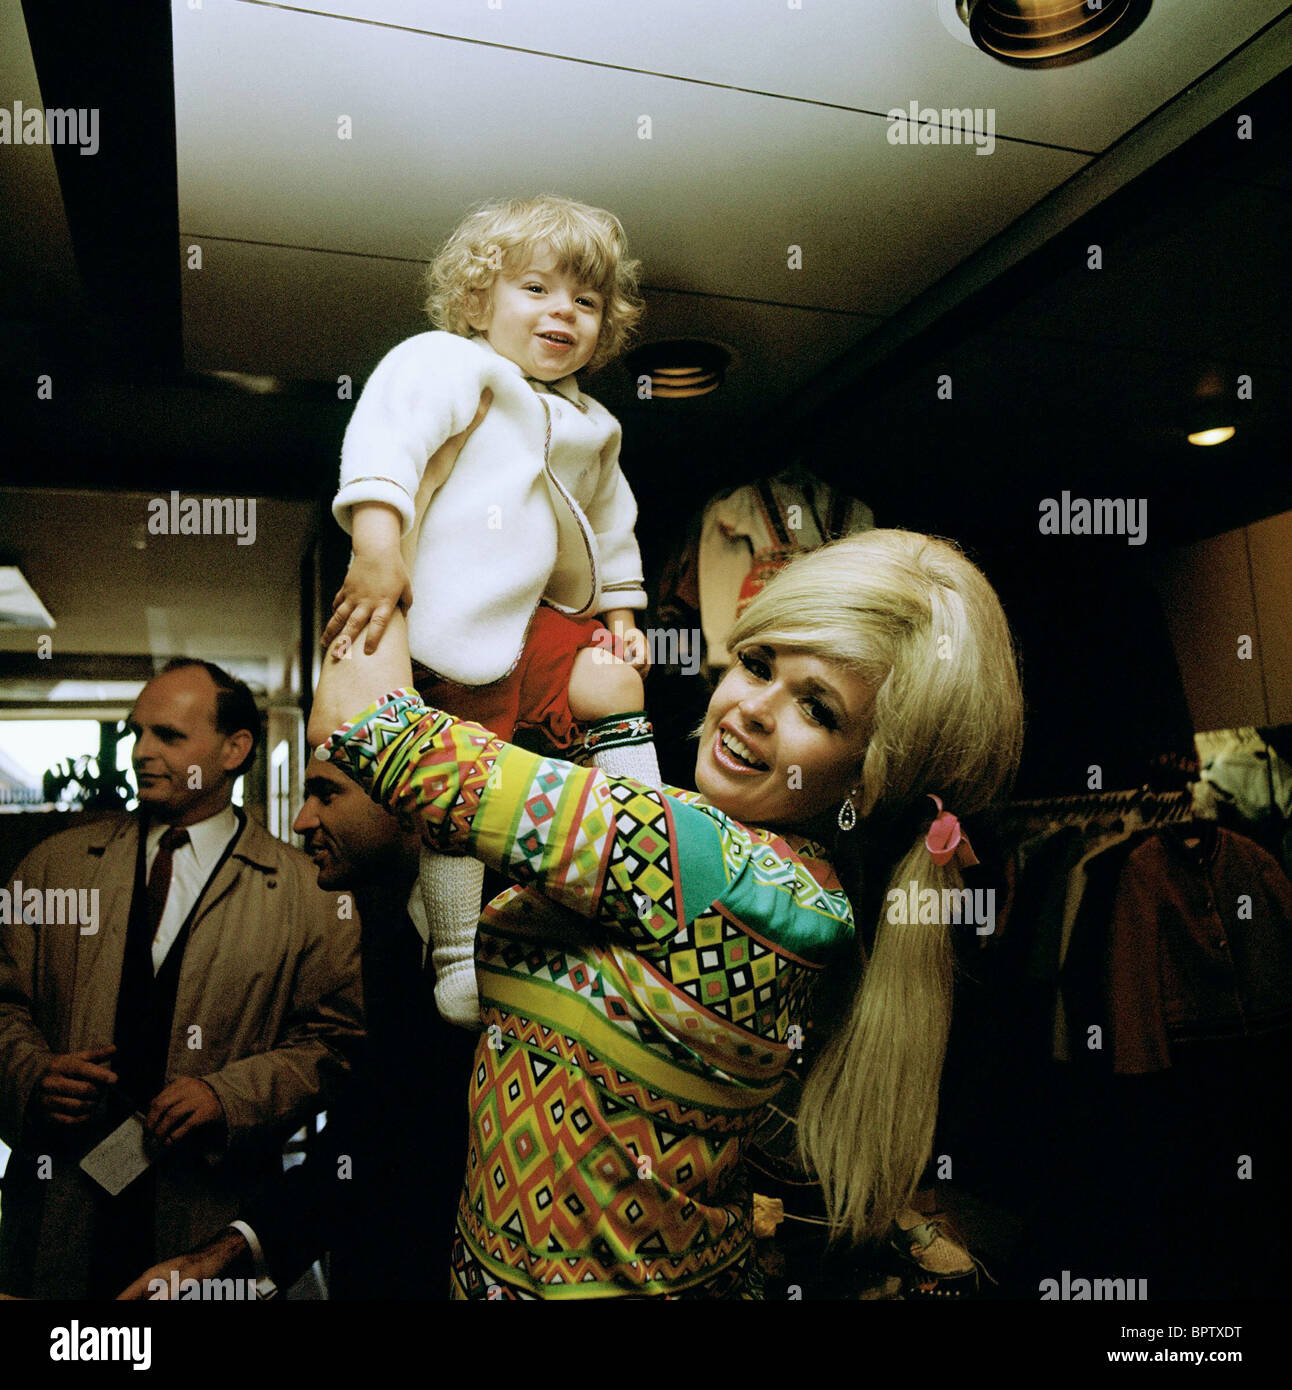 Jayne mansfield maria actress with daughter 1967 stock image